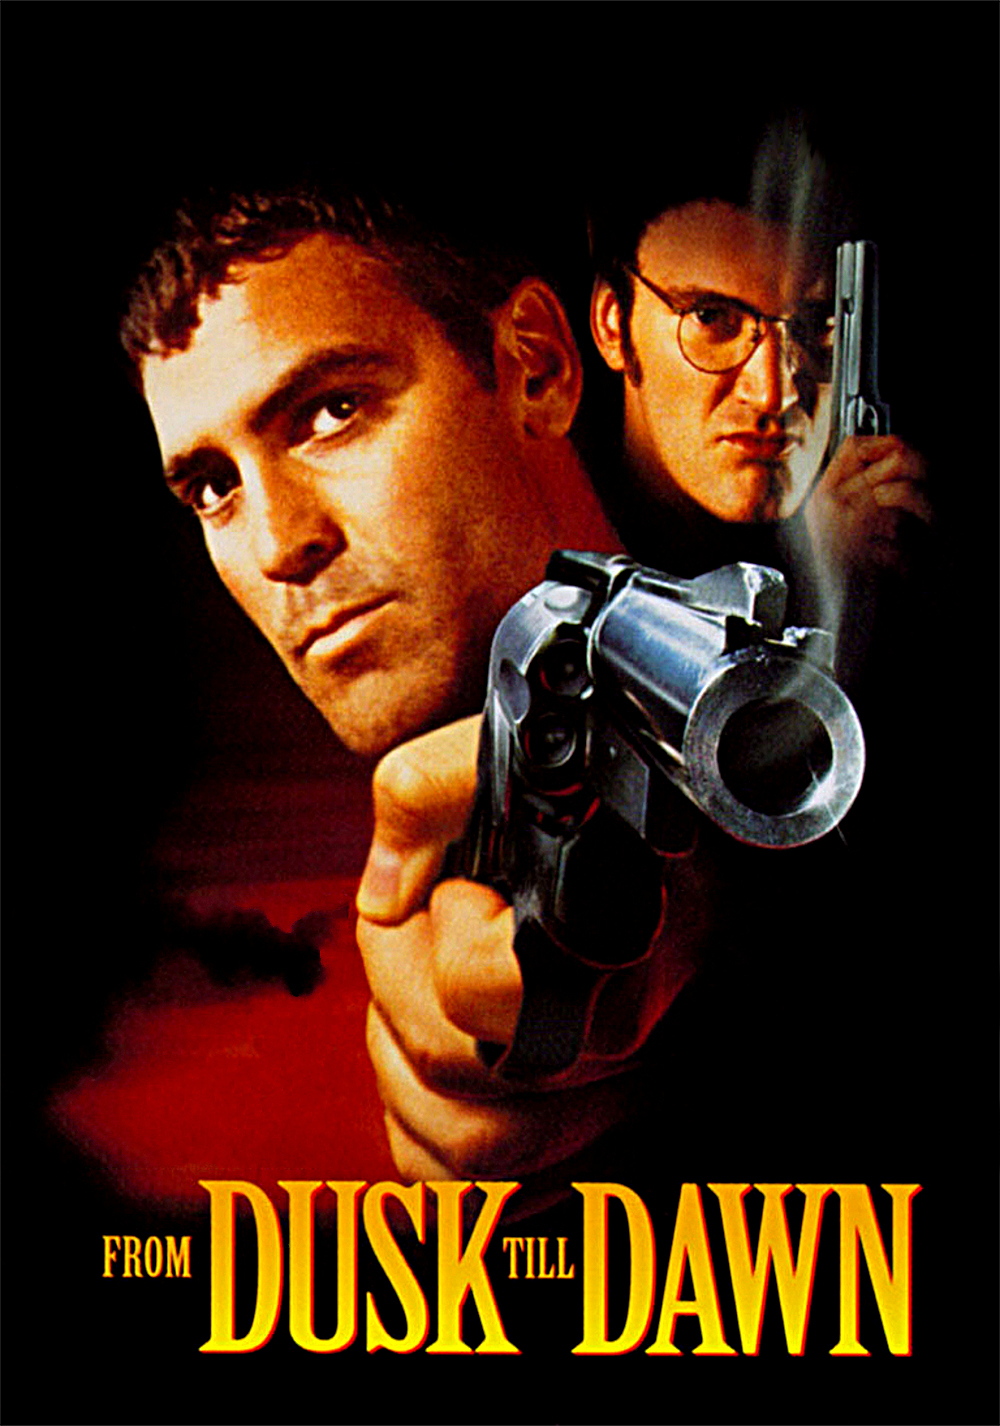 From Dusk Till Dawn Movie Poster - ID: 93470 - Image Abyss